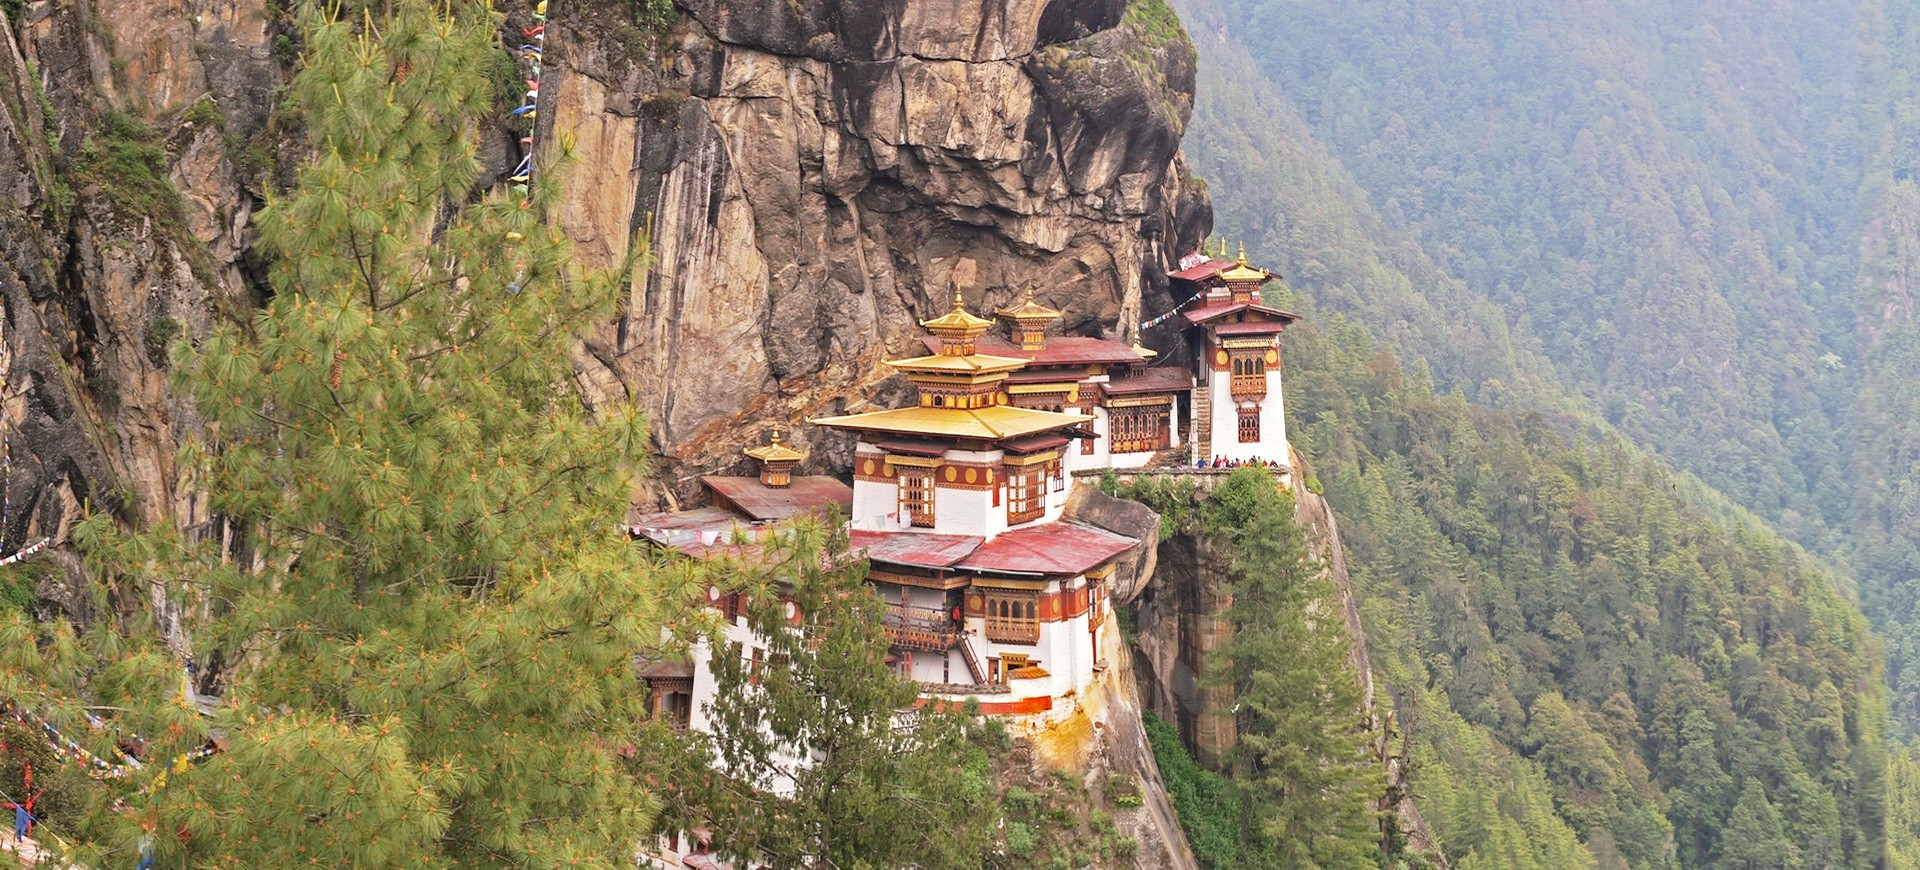 Le temple Tiger Nest au Bhoutan